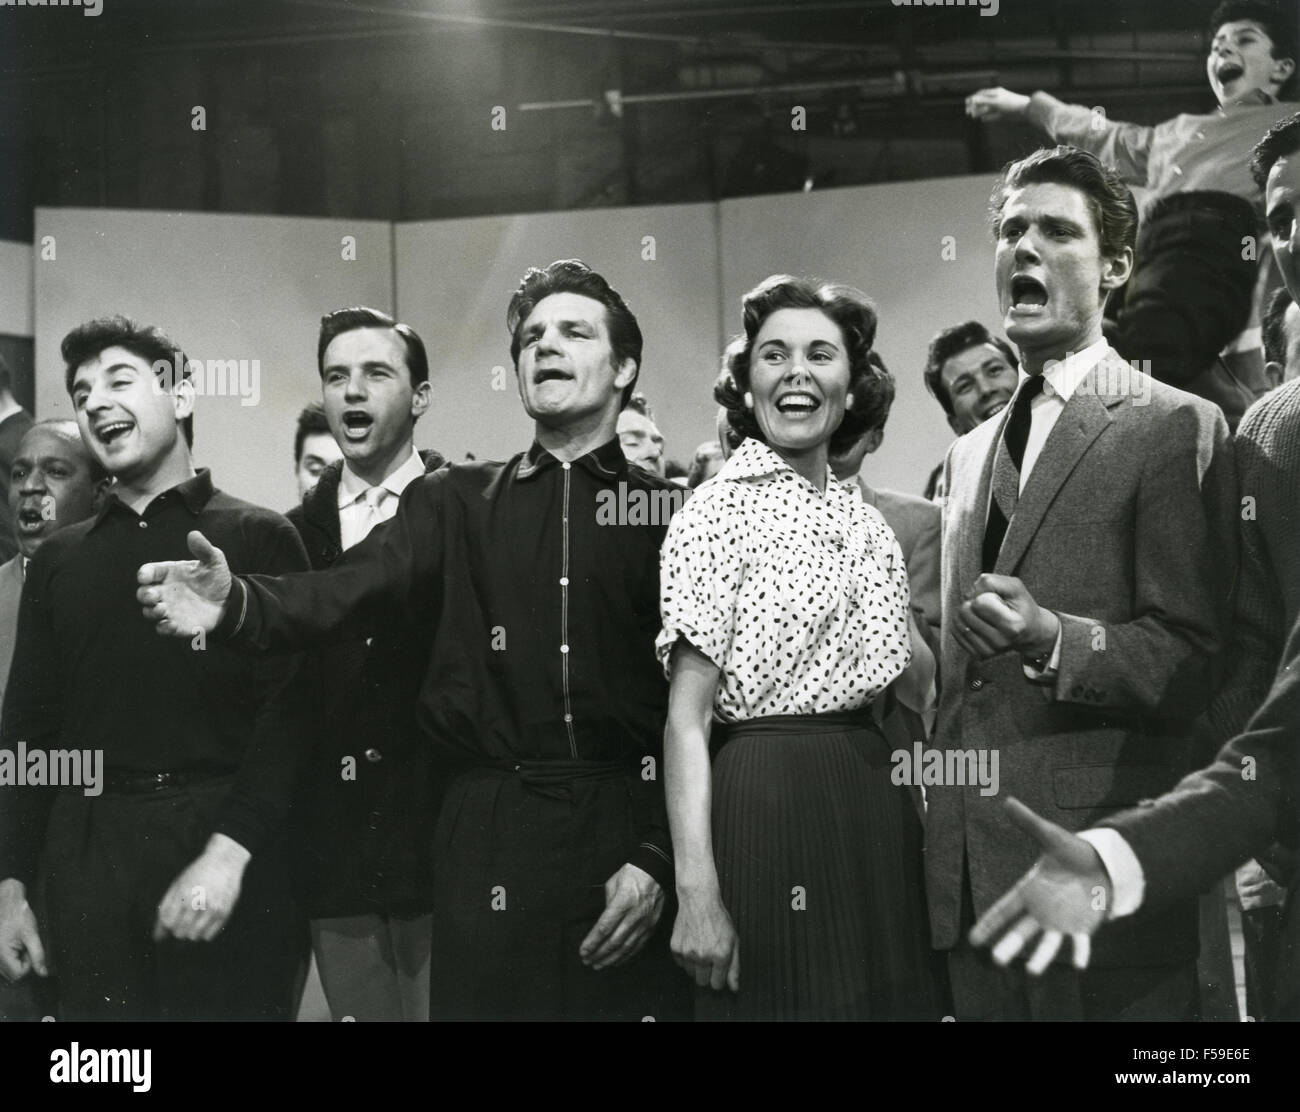 SIX-FIVE SPECIAL  - BBC pop music programme in 1957. From left: resident comic Bernie Winters, singer Denis Lotis, - Stock Image